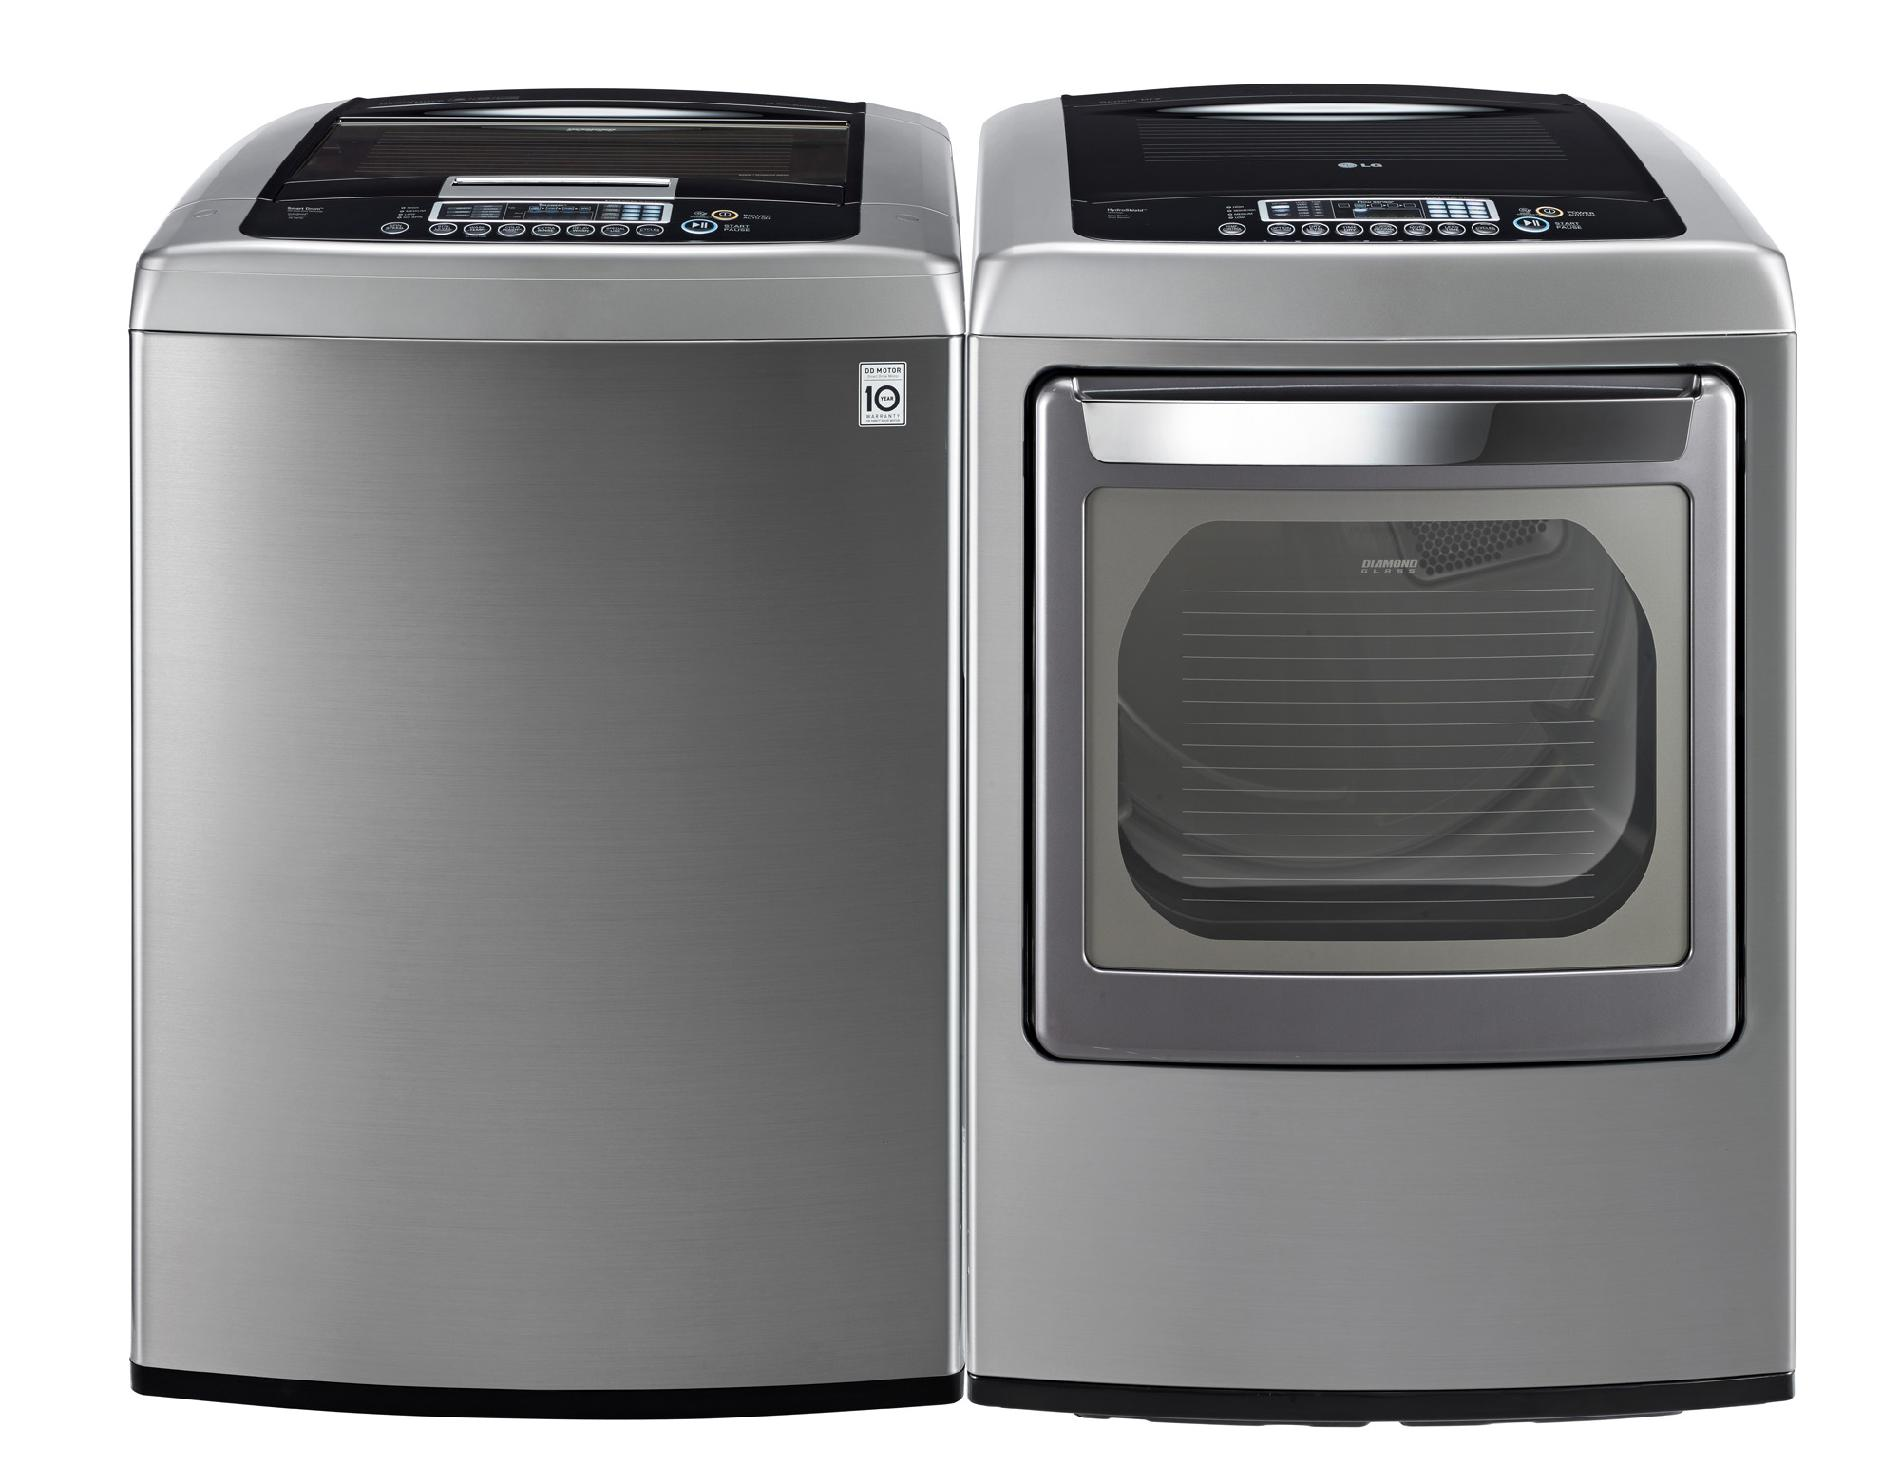 LG 4.3 cu. ft. High-Efficiency Top-Load Washer - Graphite Steel